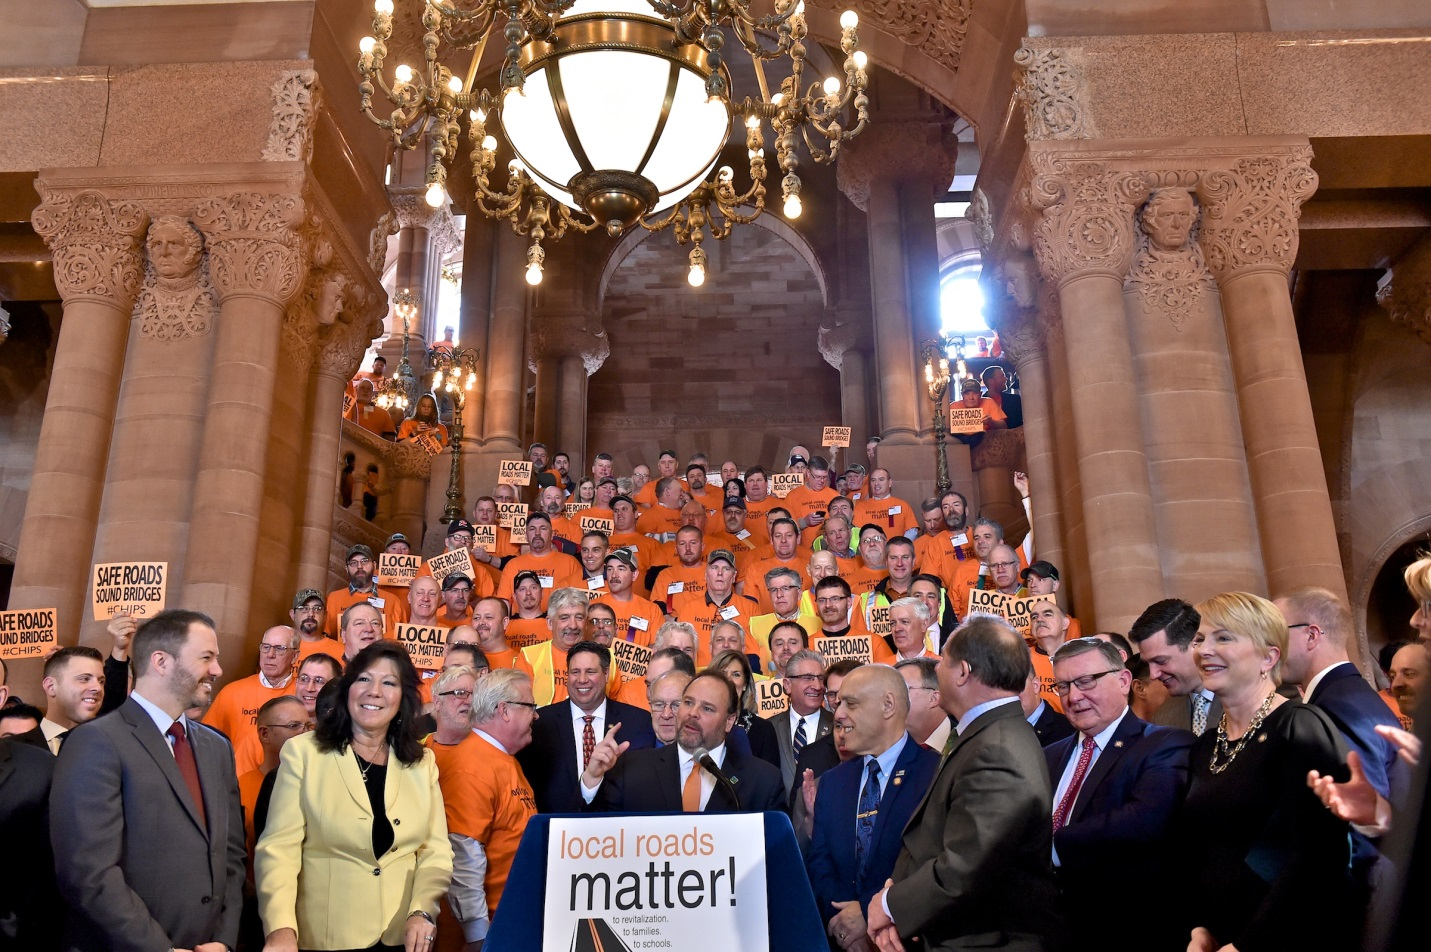 Assemblyman Brian Manktelow (R,C,I,Ref-Lyons) joined his Assembly and Senate colleagues along with hundreds of local highway workers, advocacy group representatives and local government officials for a rally calling for an increase to CHIPS funding on Wed